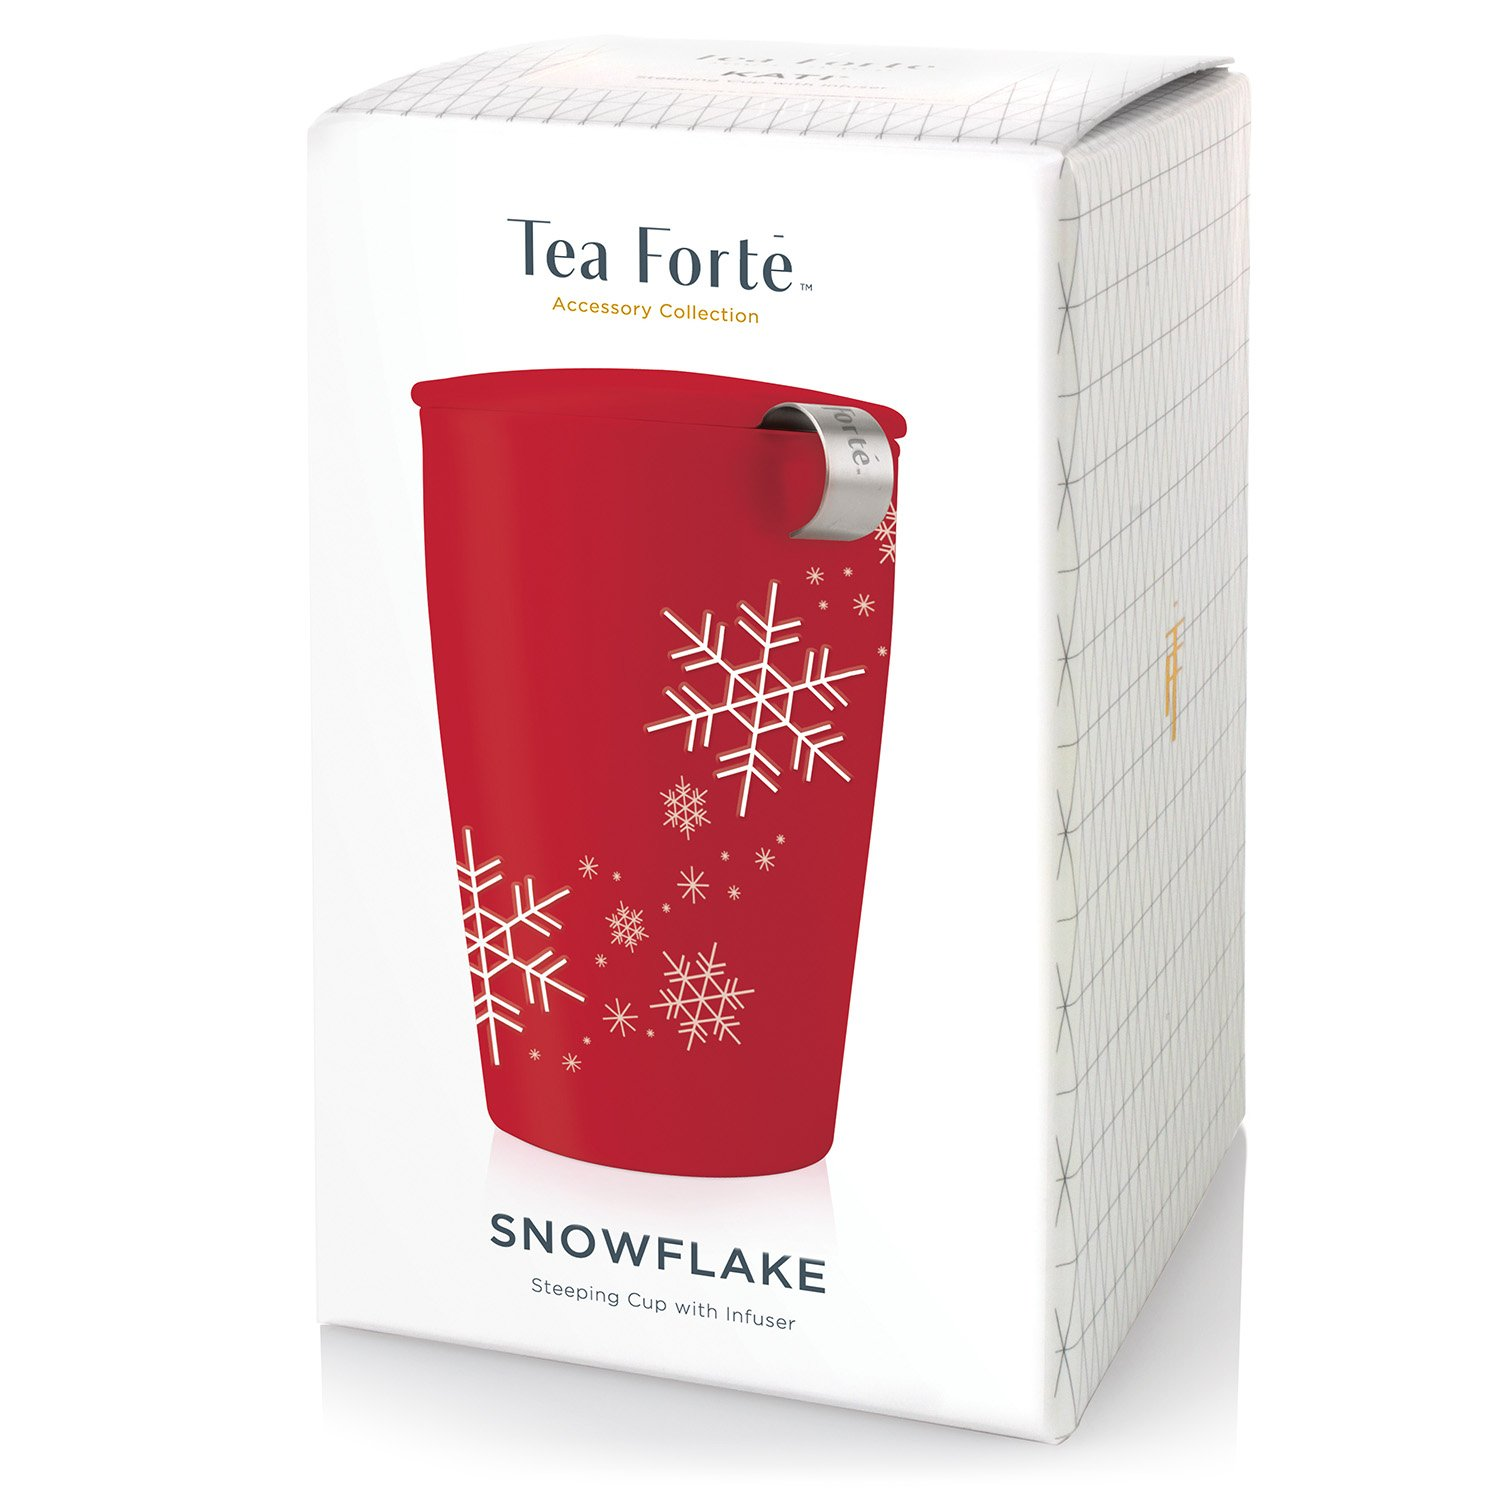 Tea Forté KATI Cup Ceramic Tea Brewing Cup with Infuser Basket and Lid for Steeping, Loose Leaf Tea Maker, Red Snowflake by Tea Forte (Image #2)